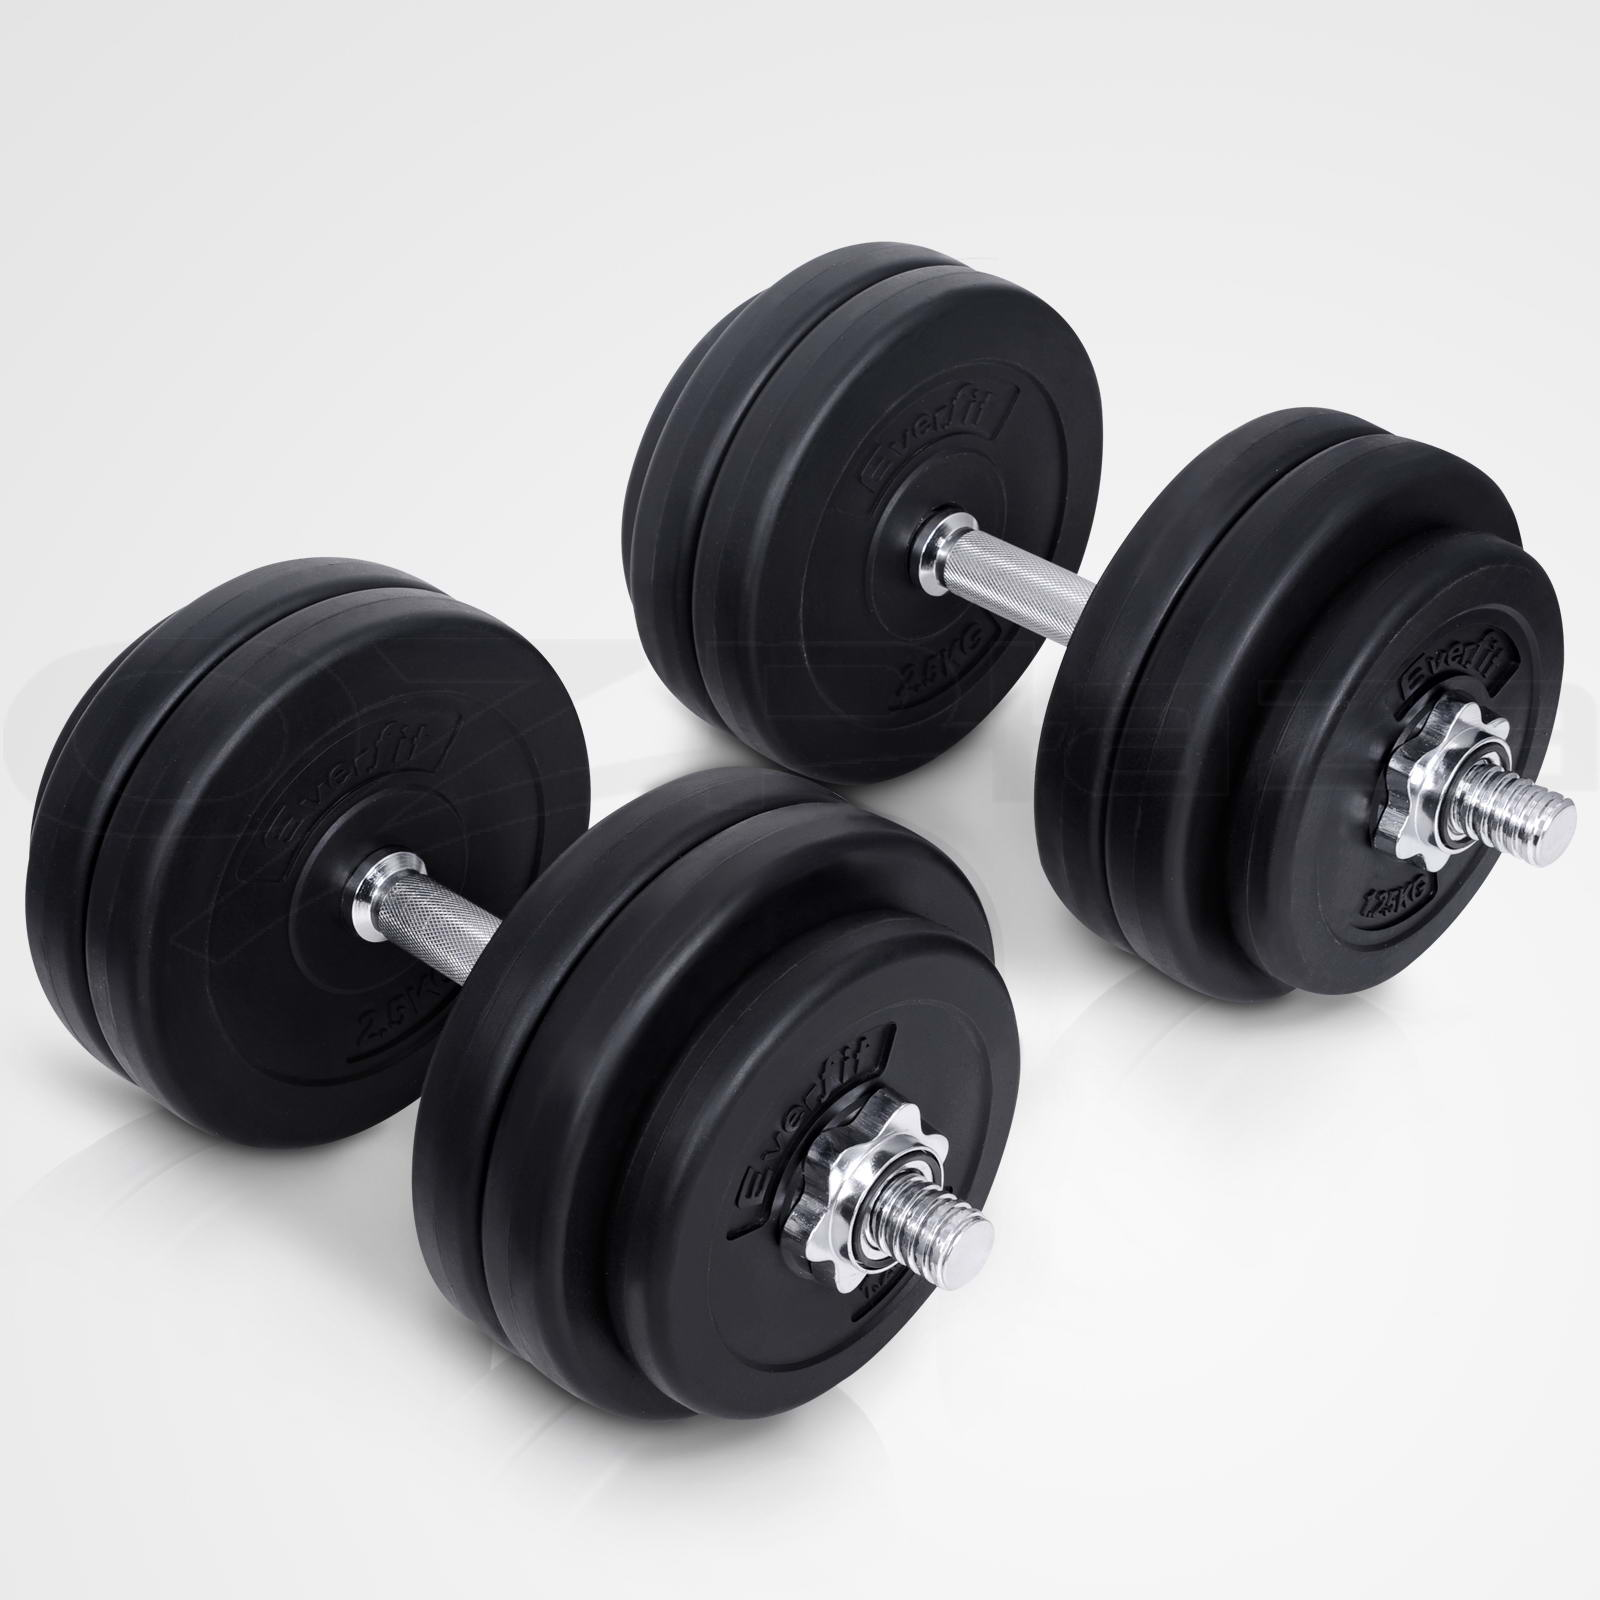 Everfit Dumbbell Set Weight Dumbbells Plates Home Gym ...